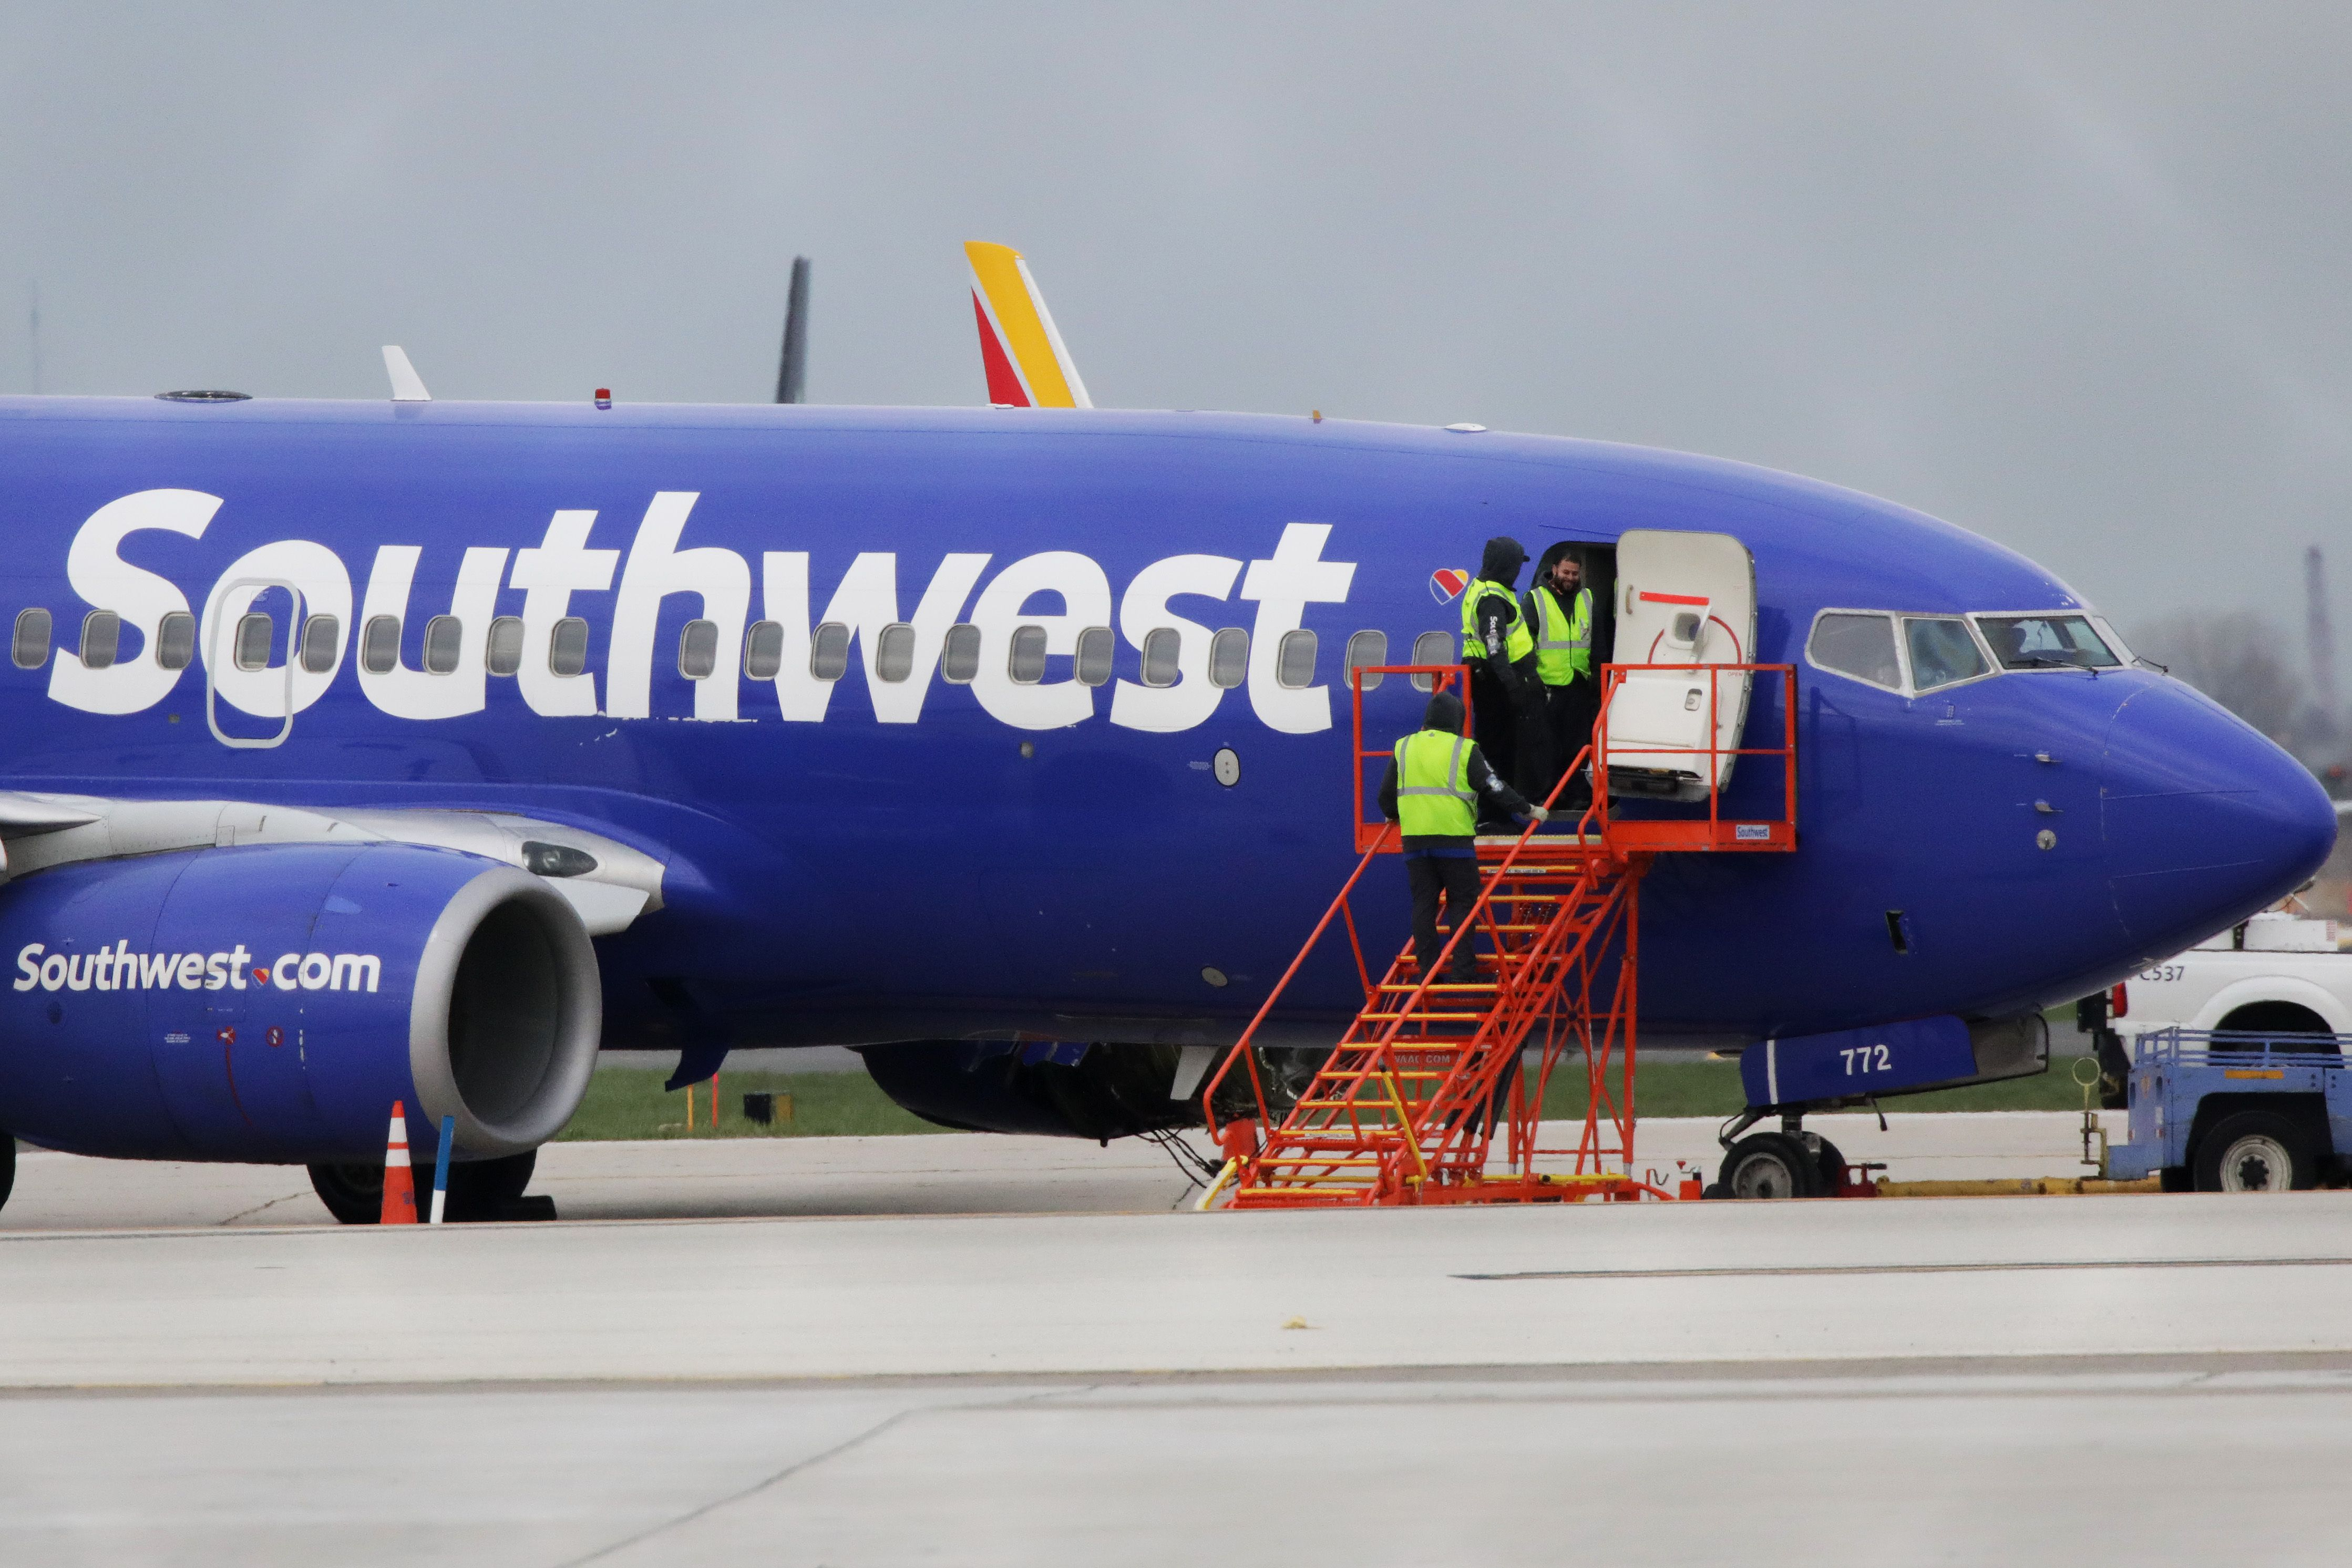 Coroner Details How Woman Who Was Sucked Out of the Southwest Plane Died